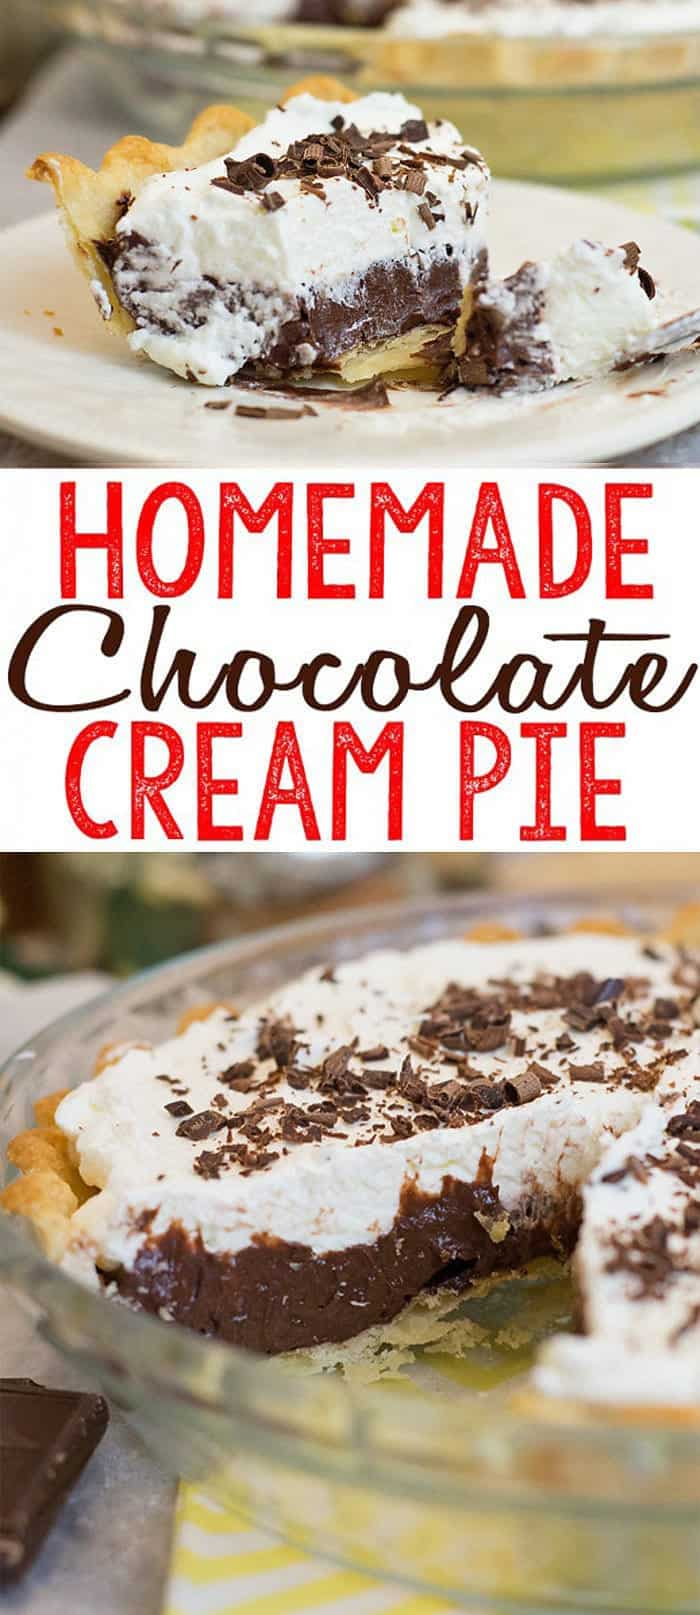 I love a good Chocolate Cream Pie, don't you?.  So luscious, creamy and chocolatey... This Homemade Chocolate Cream Pie recipe is surprisingly easy to make and I think you'll agree, this might be the best Chocolate Cream pie ever.